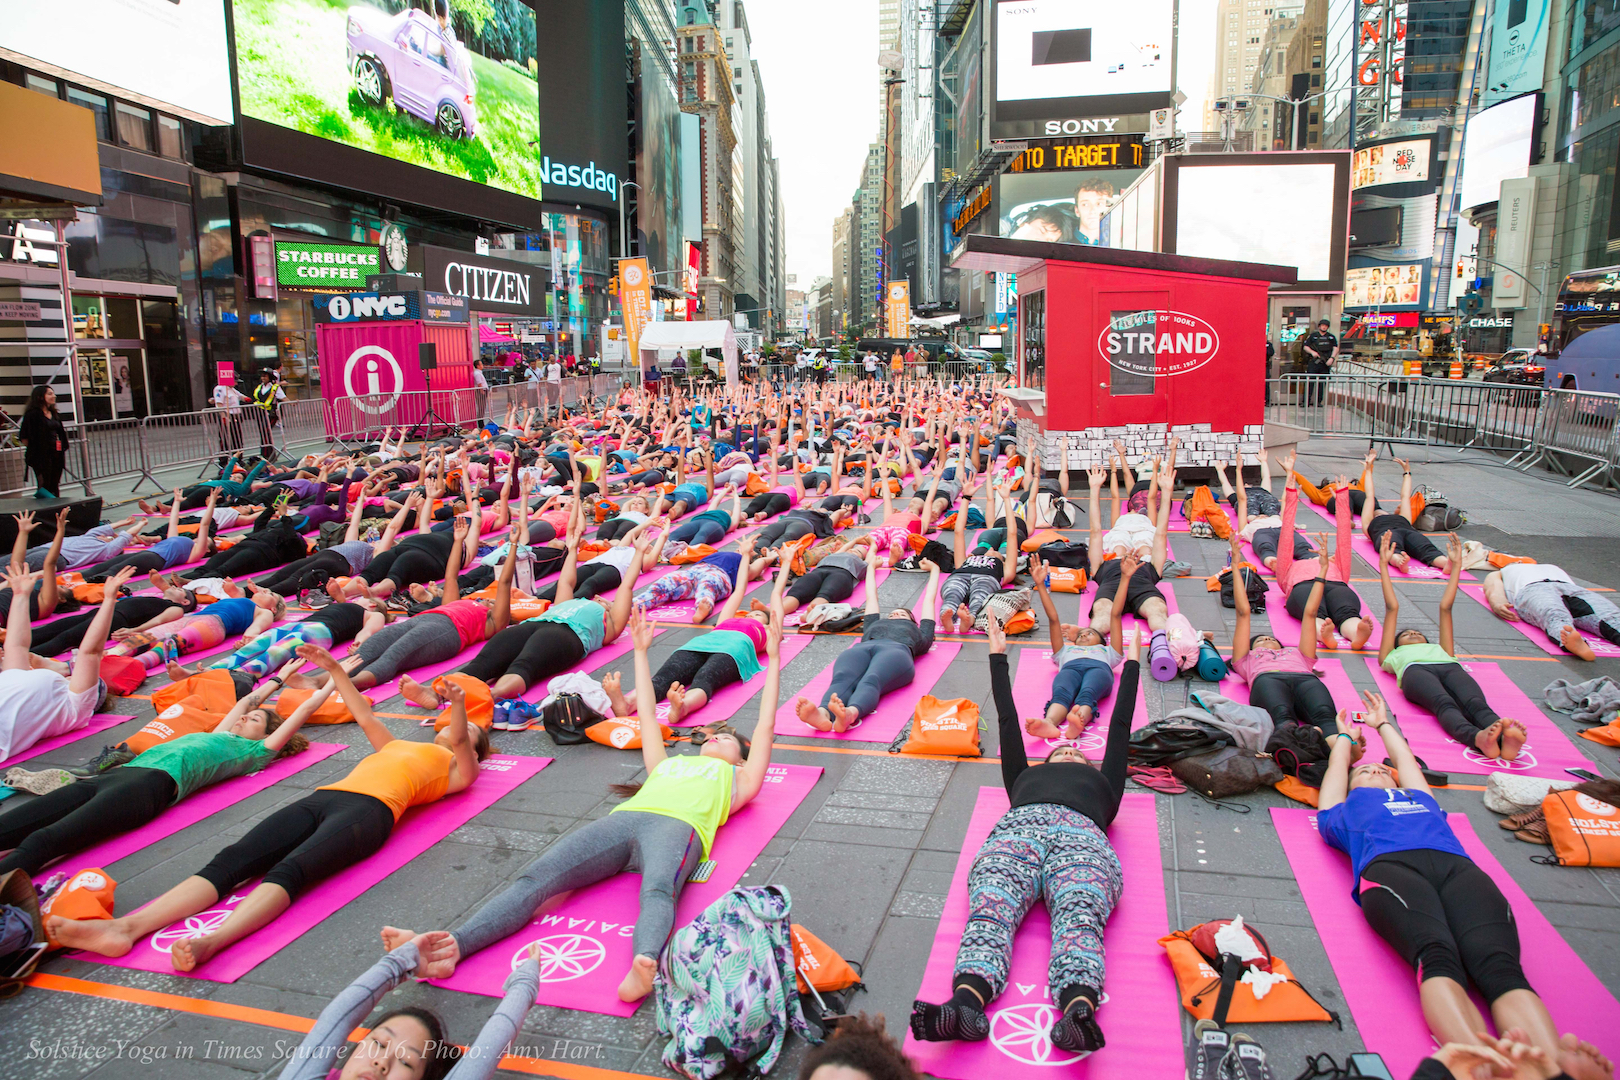 Solstice in Times Square: Mind Over Madness Yoga Presented by Aerie Schedule